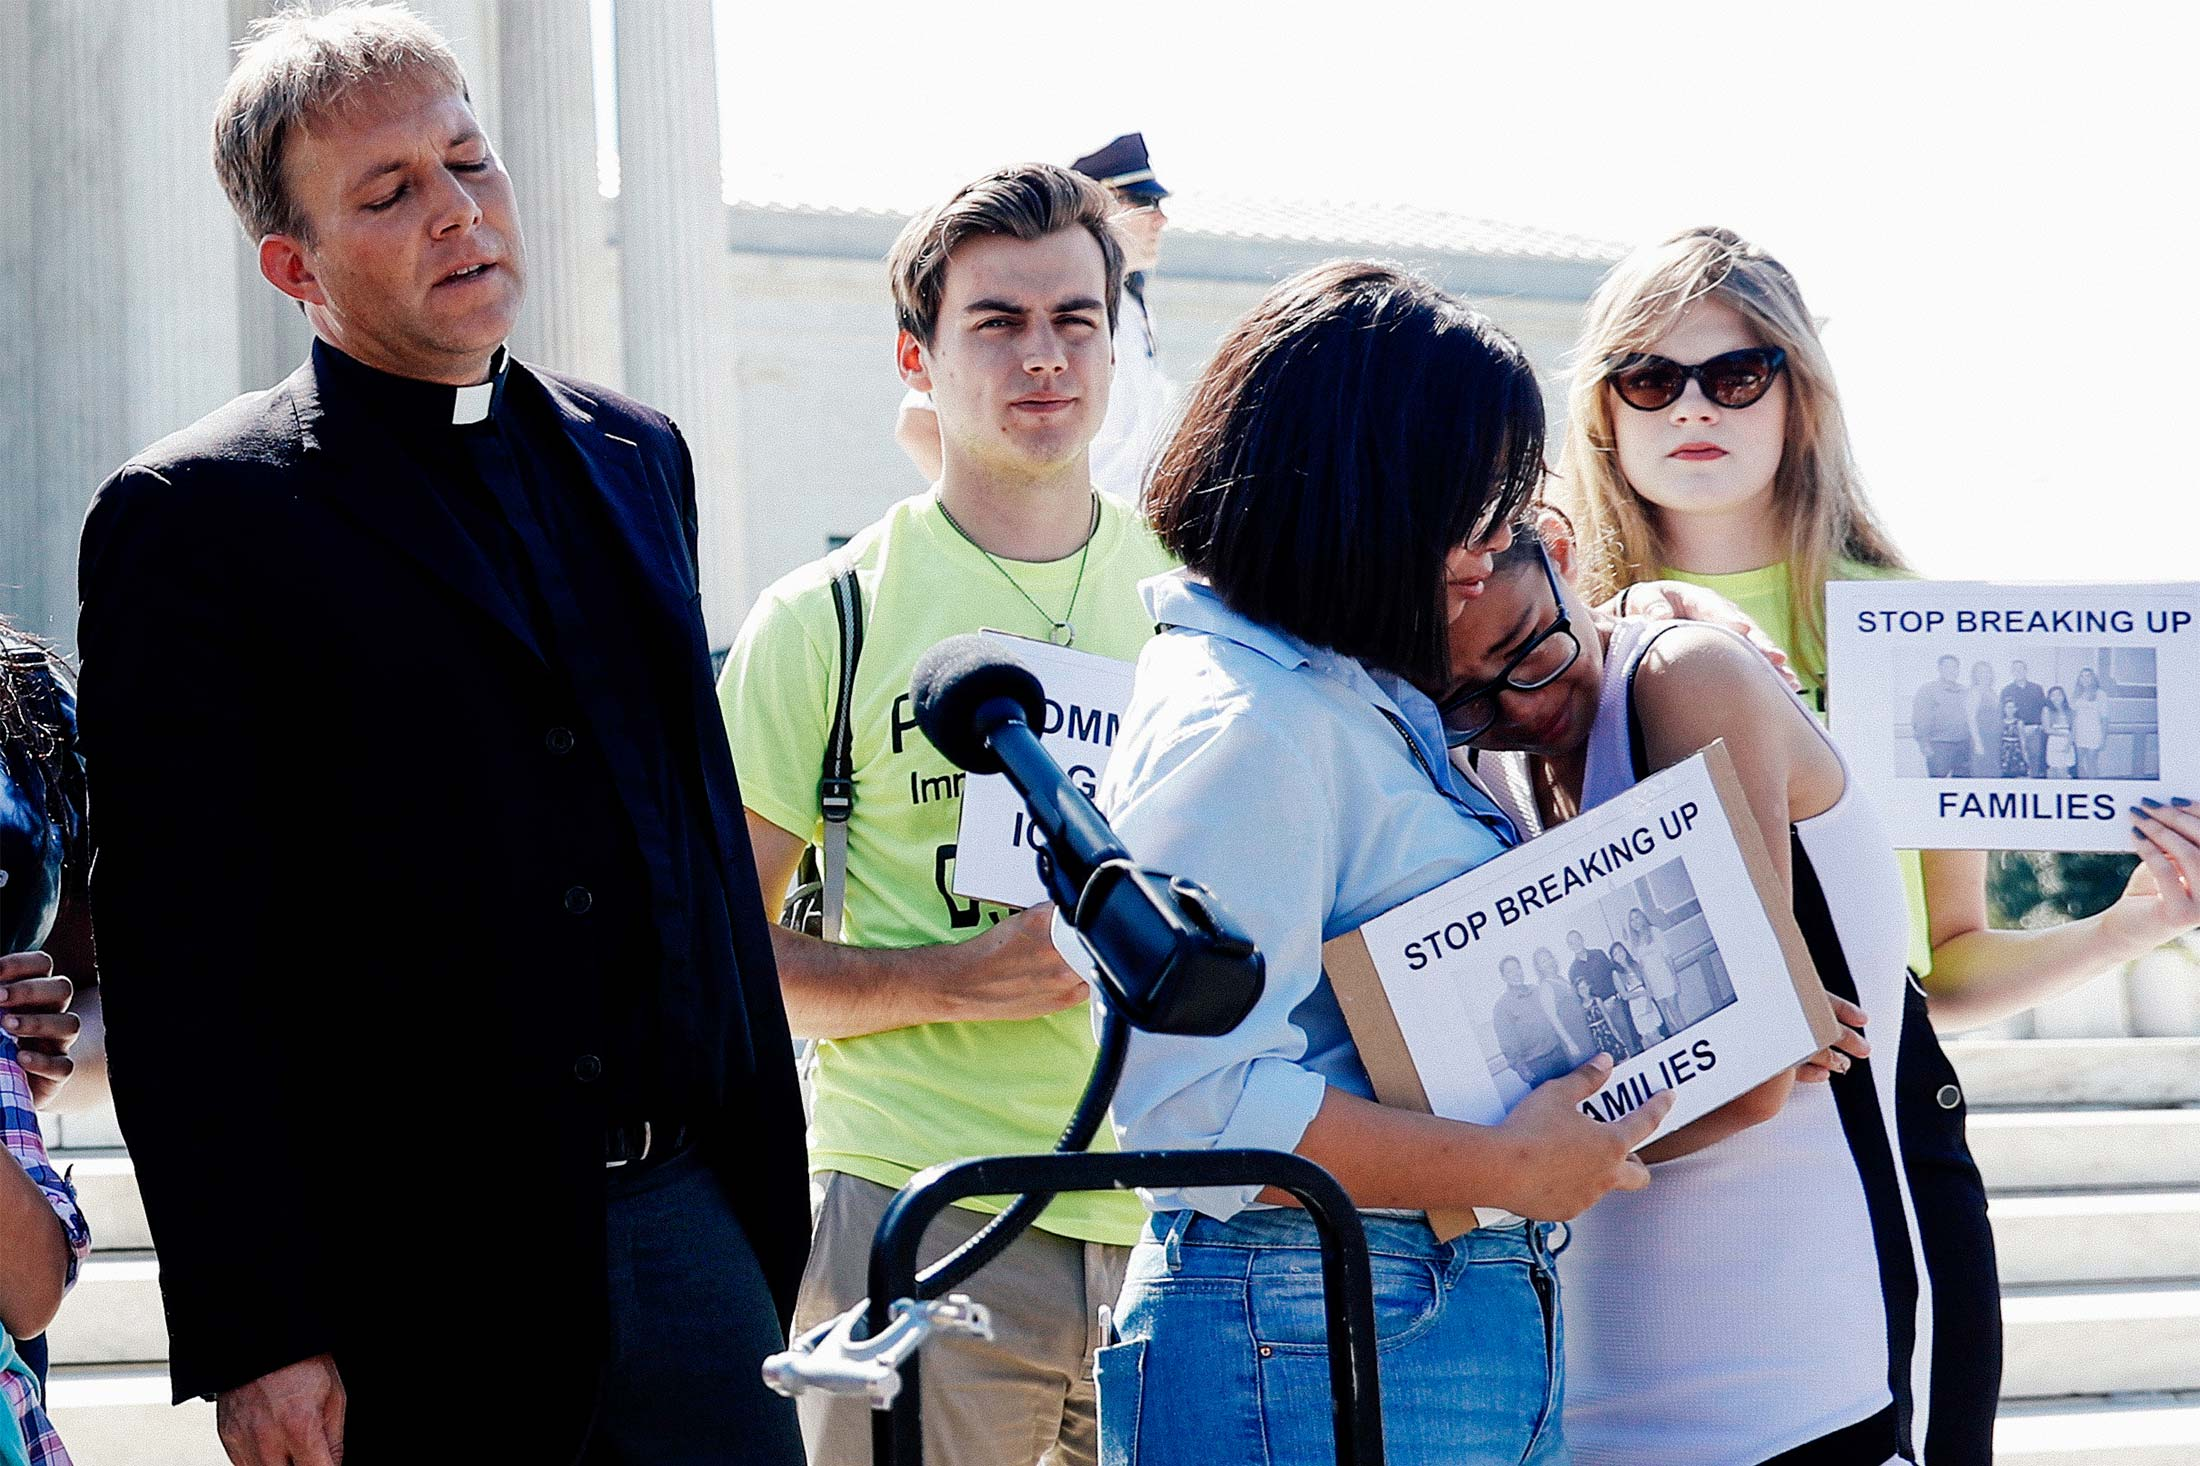 The Rev. Seth Kaper-Dale looks on as sisters Michelle Edralin, 12, and Nicole Edralin, 15, react with immigration rights proponents outside the U.S. Supreme Court after it upheld President Donald Trump's travel ban on Tuesday.